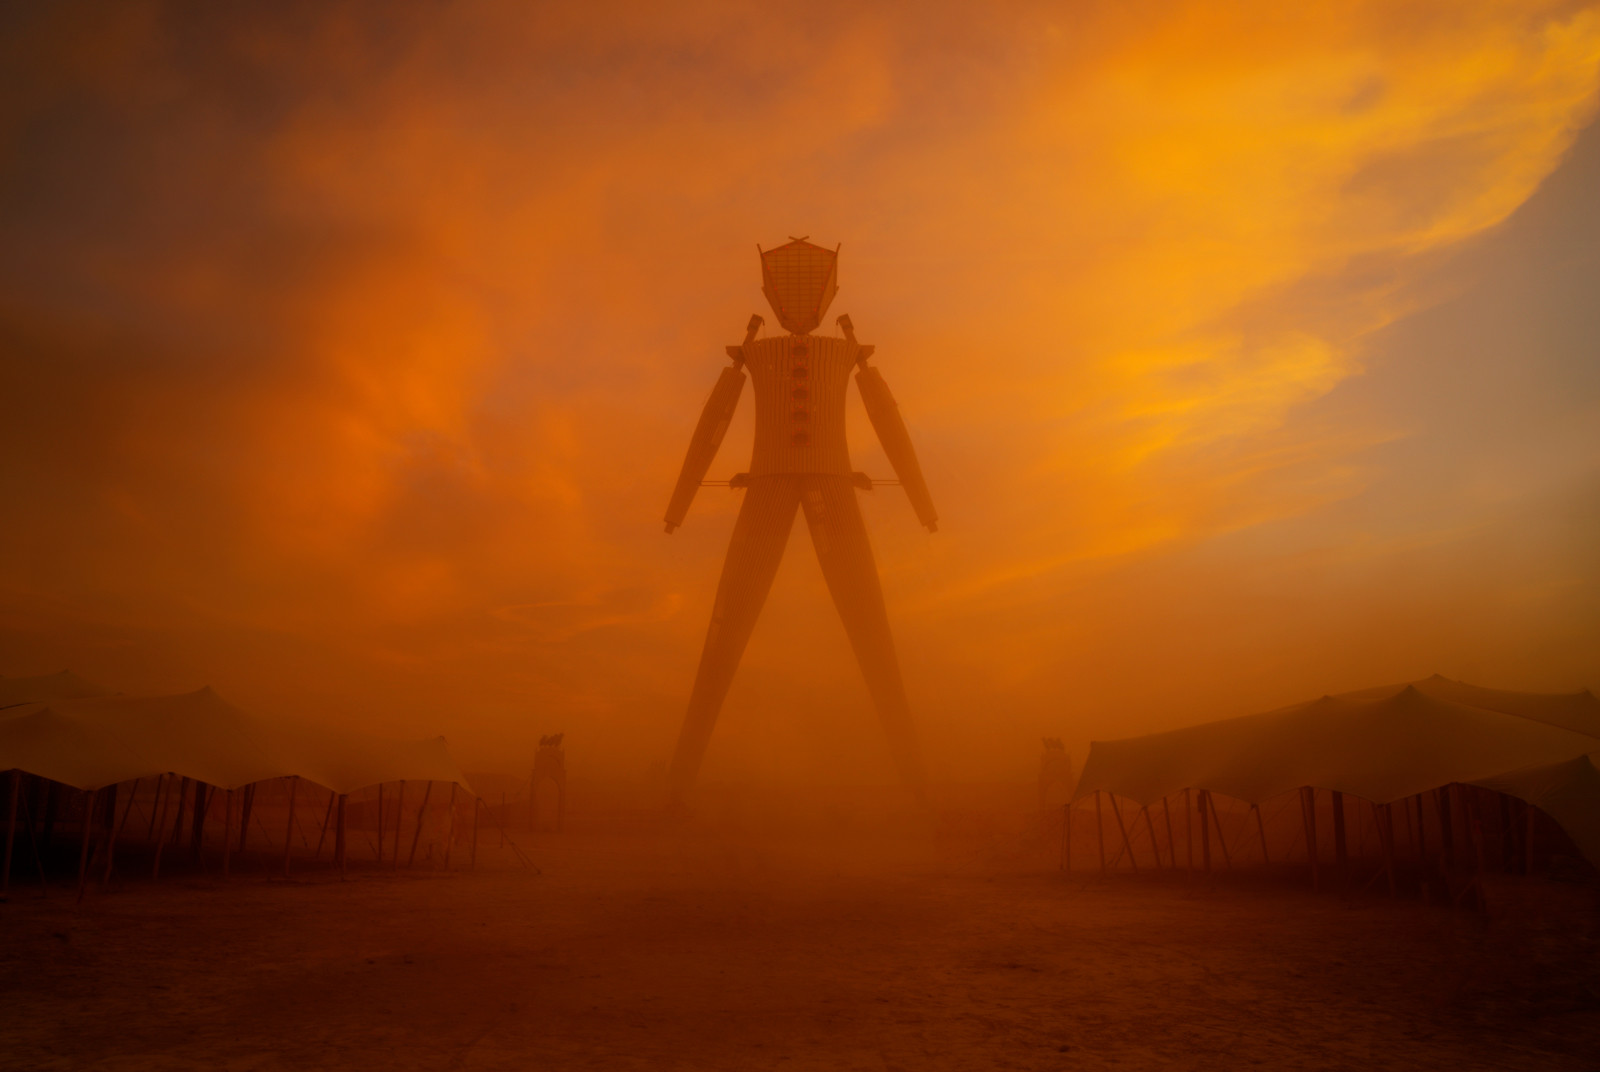 'Man Before Fire' - Black Rock City, 2015 - Photo Trey Ratcliff